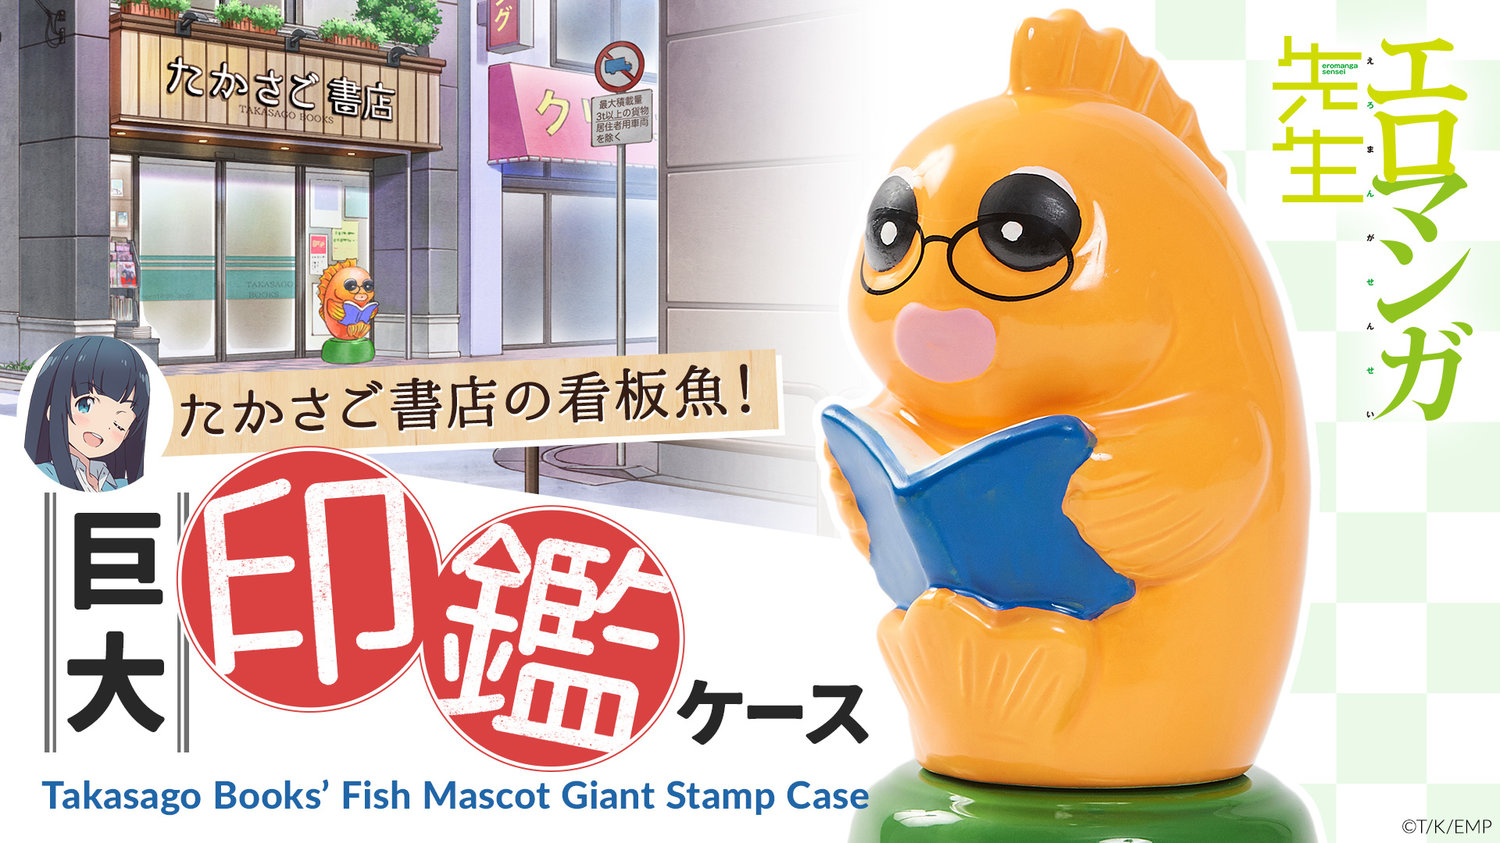 Eromanga Sensei Takasago Books' Fish Mascot Giant Stamp Case